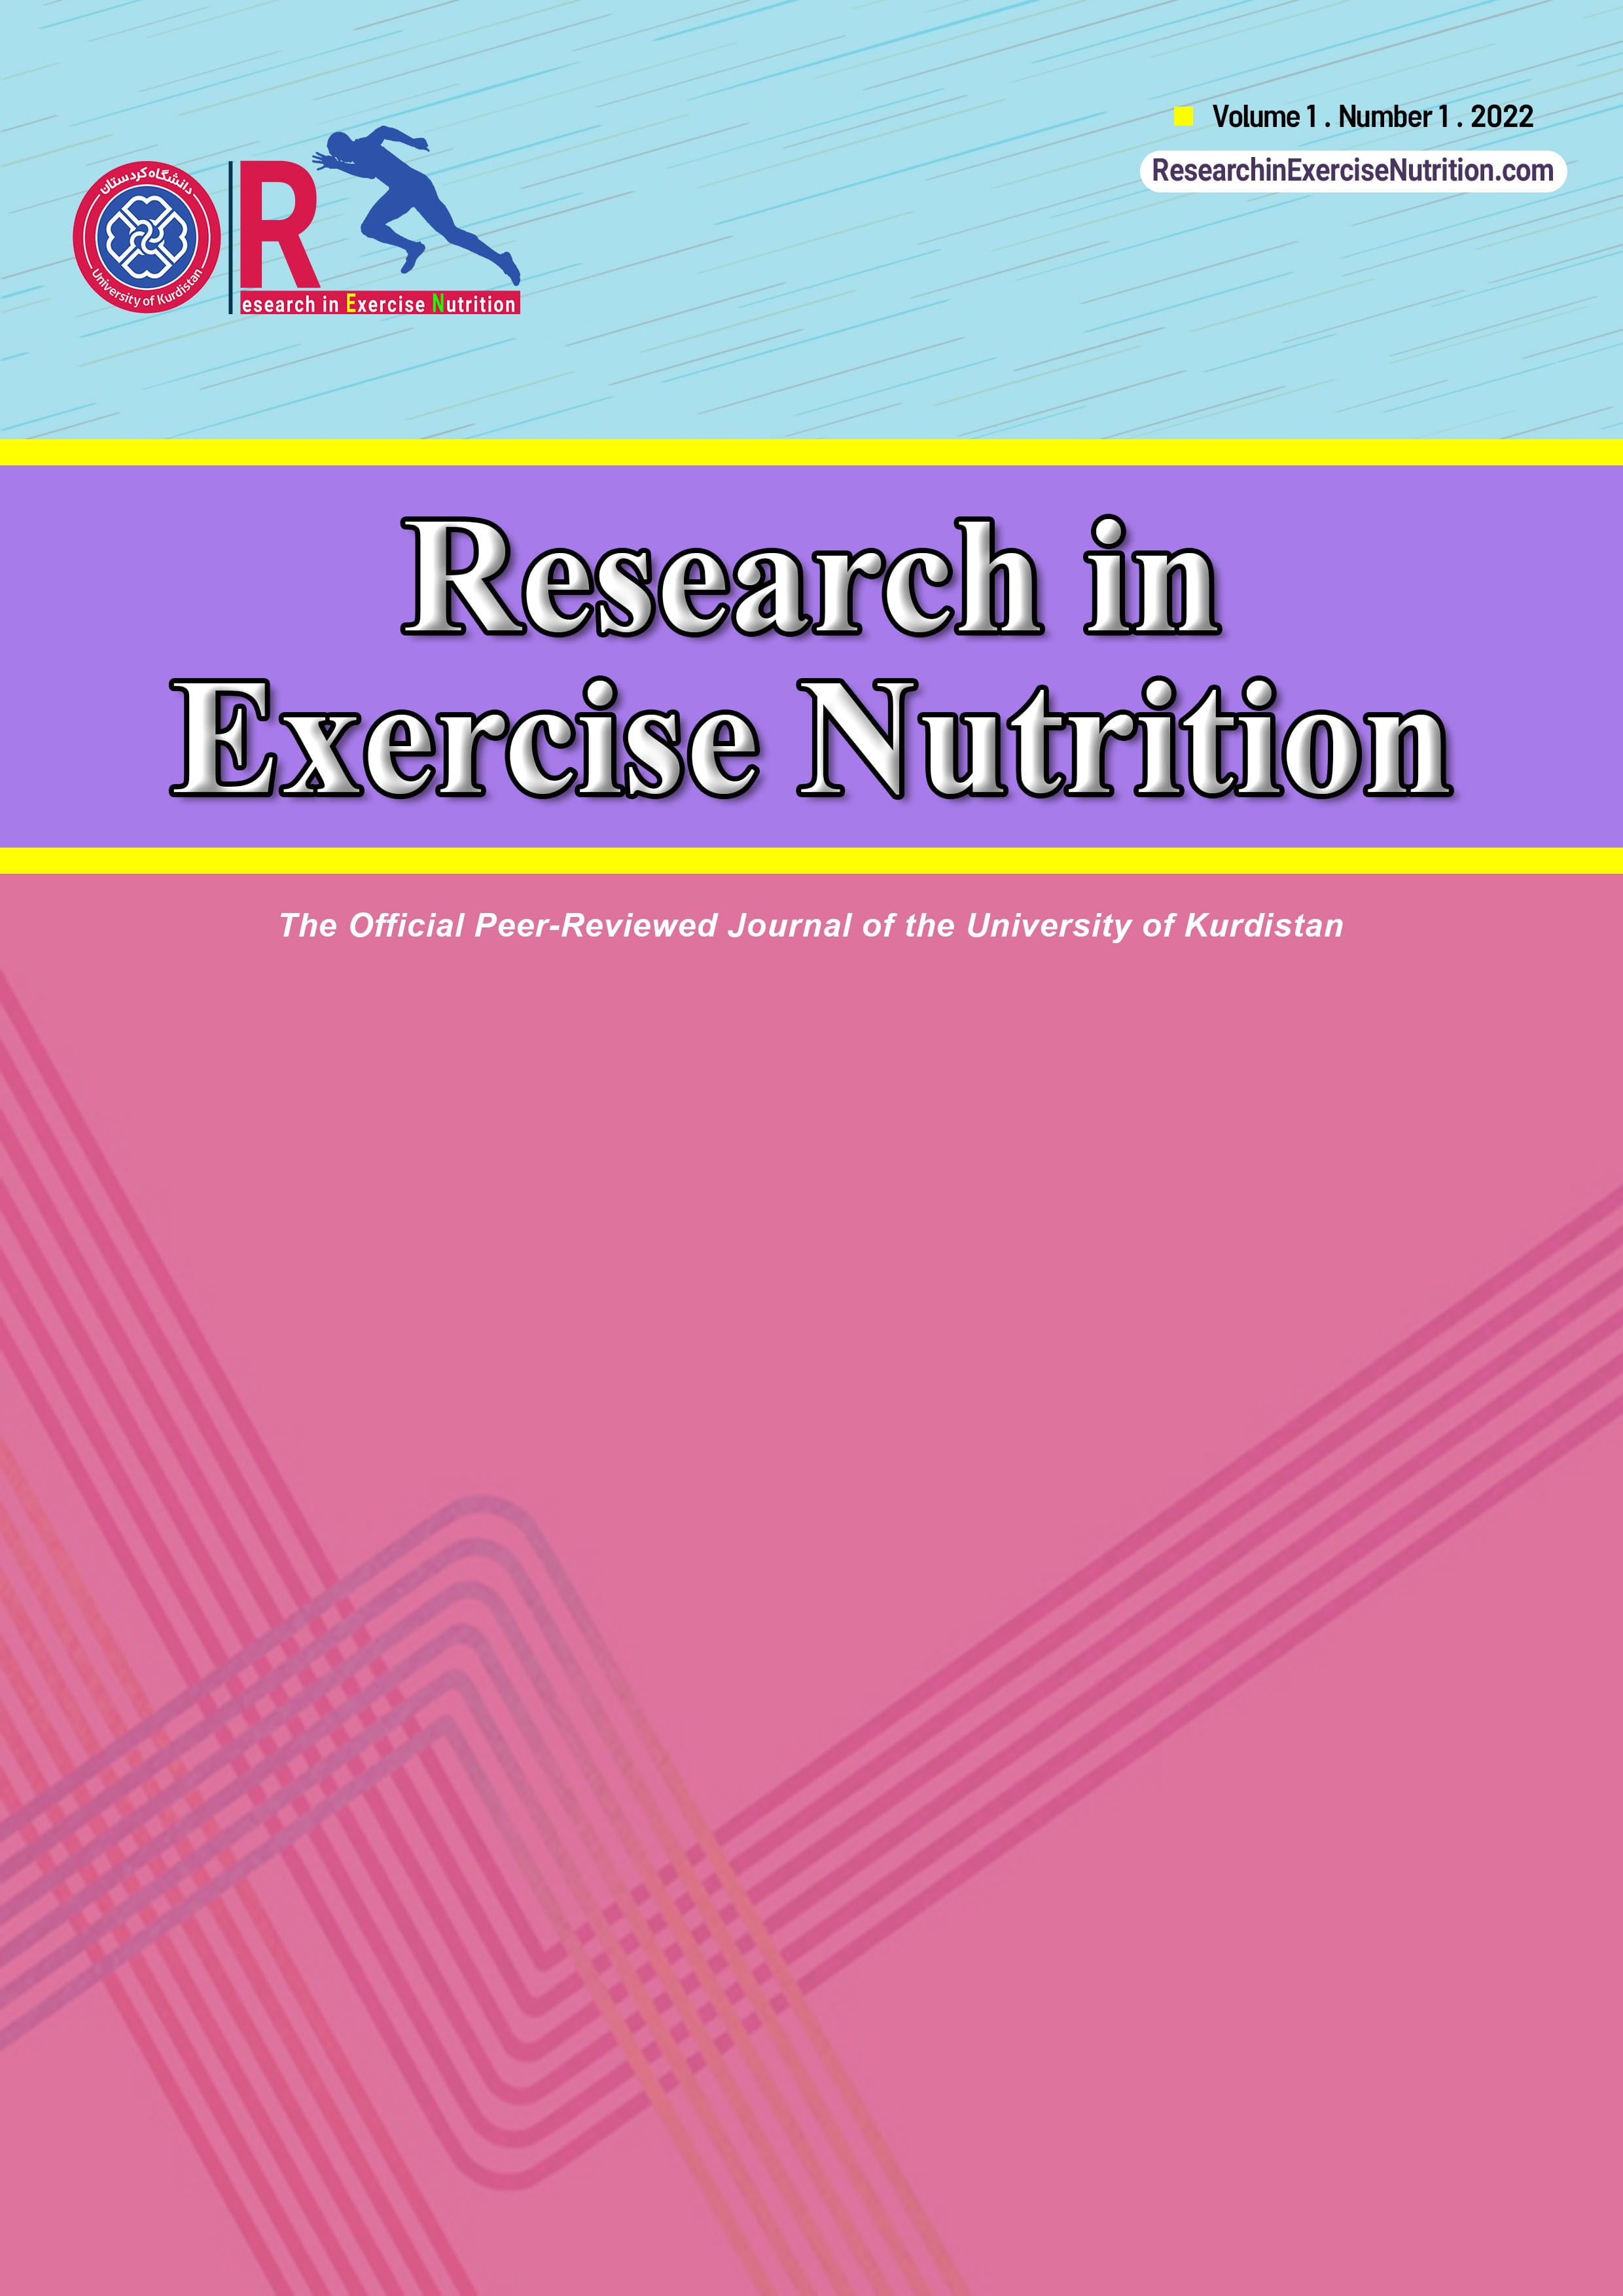 Research in Exercise Nutrition